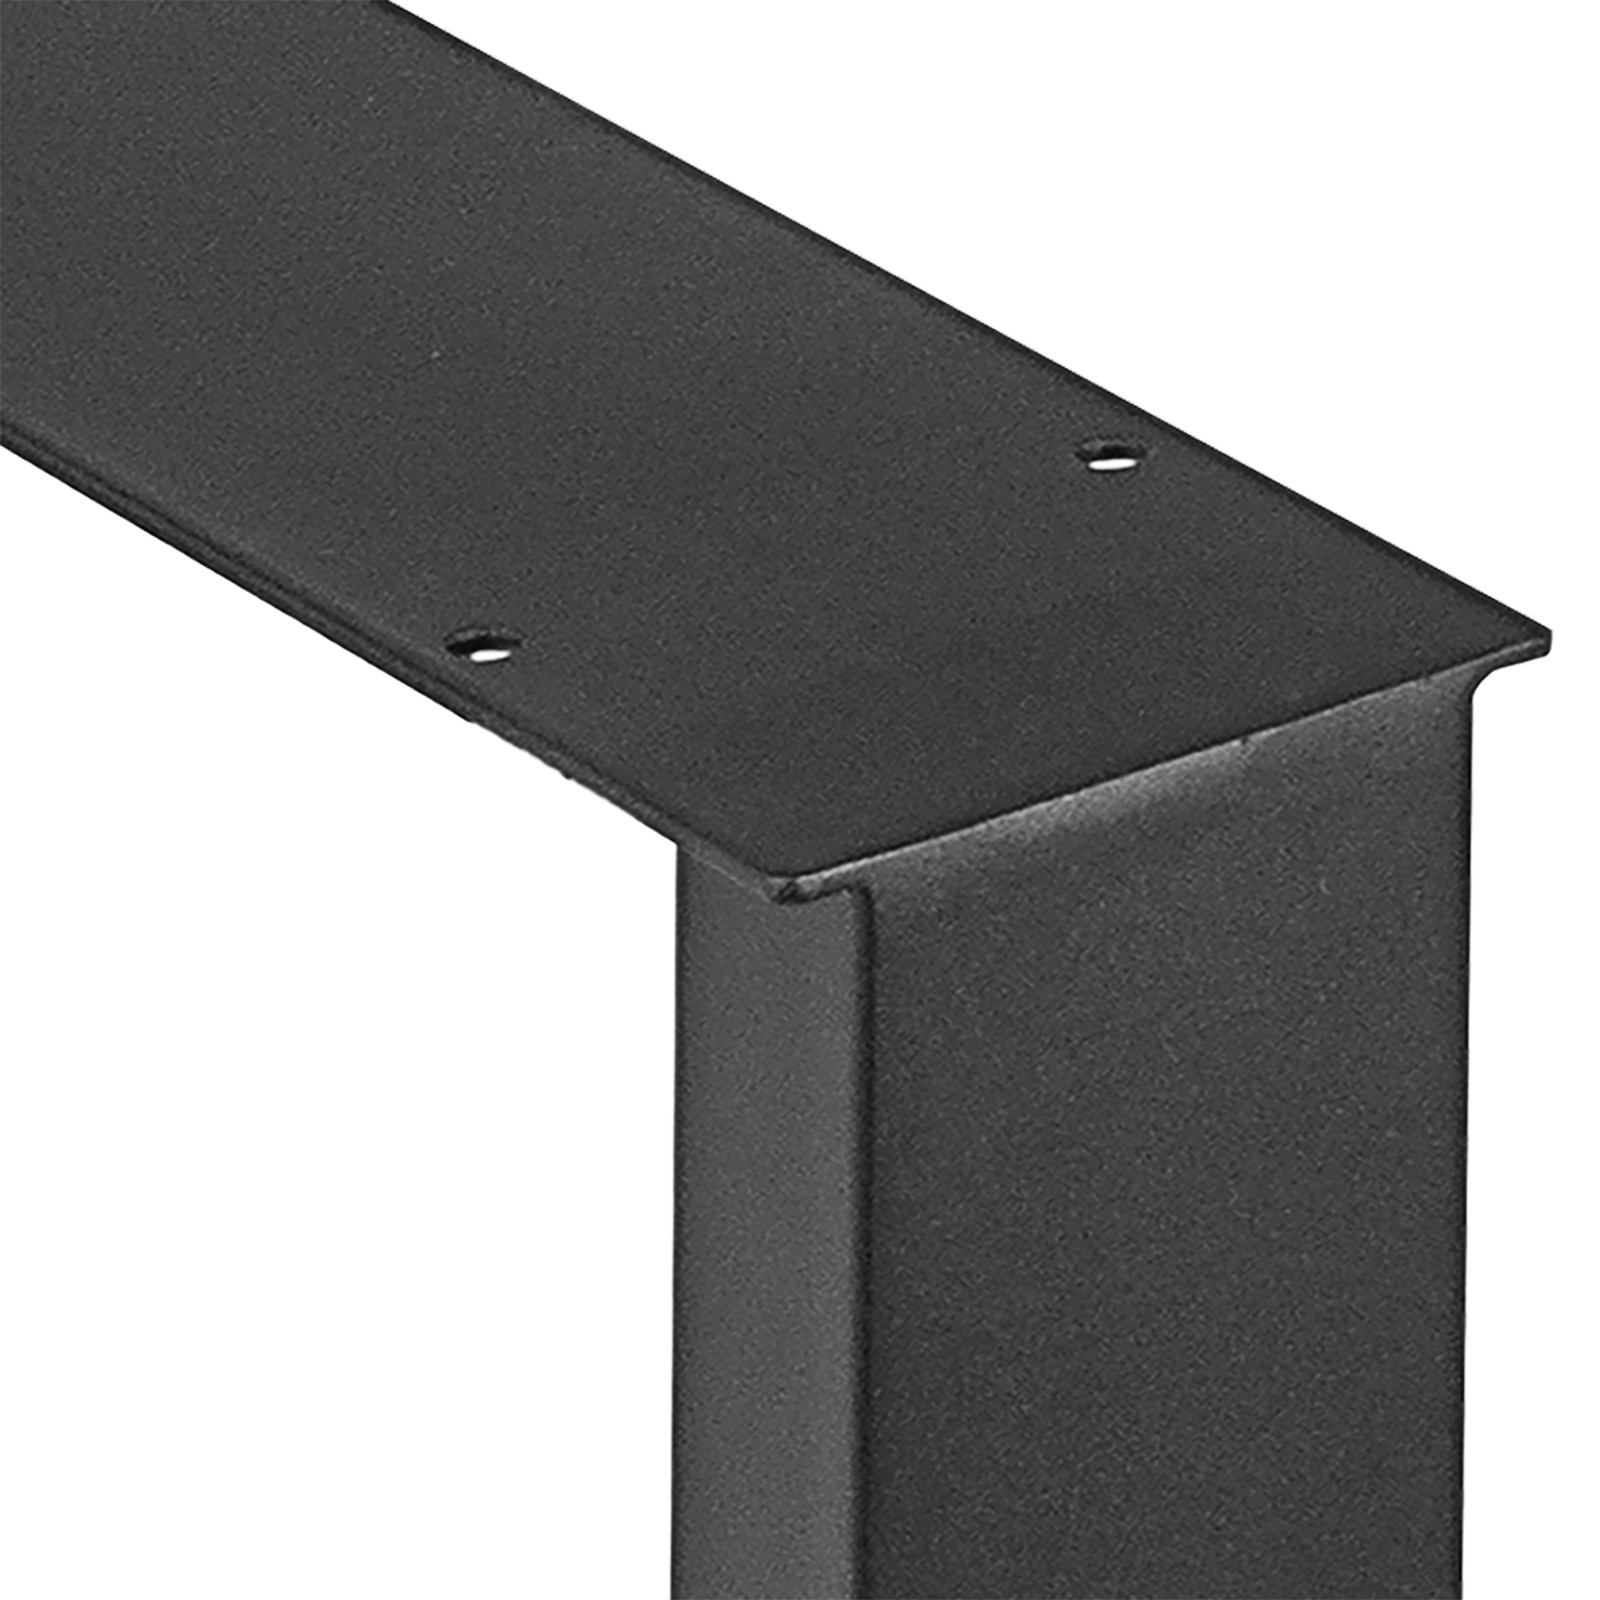 2X-Table-Legs-Black-Dining-Table-Leg-Heavy-Duty-Computer-Desk-Legs-Rectangle thumbnail 79